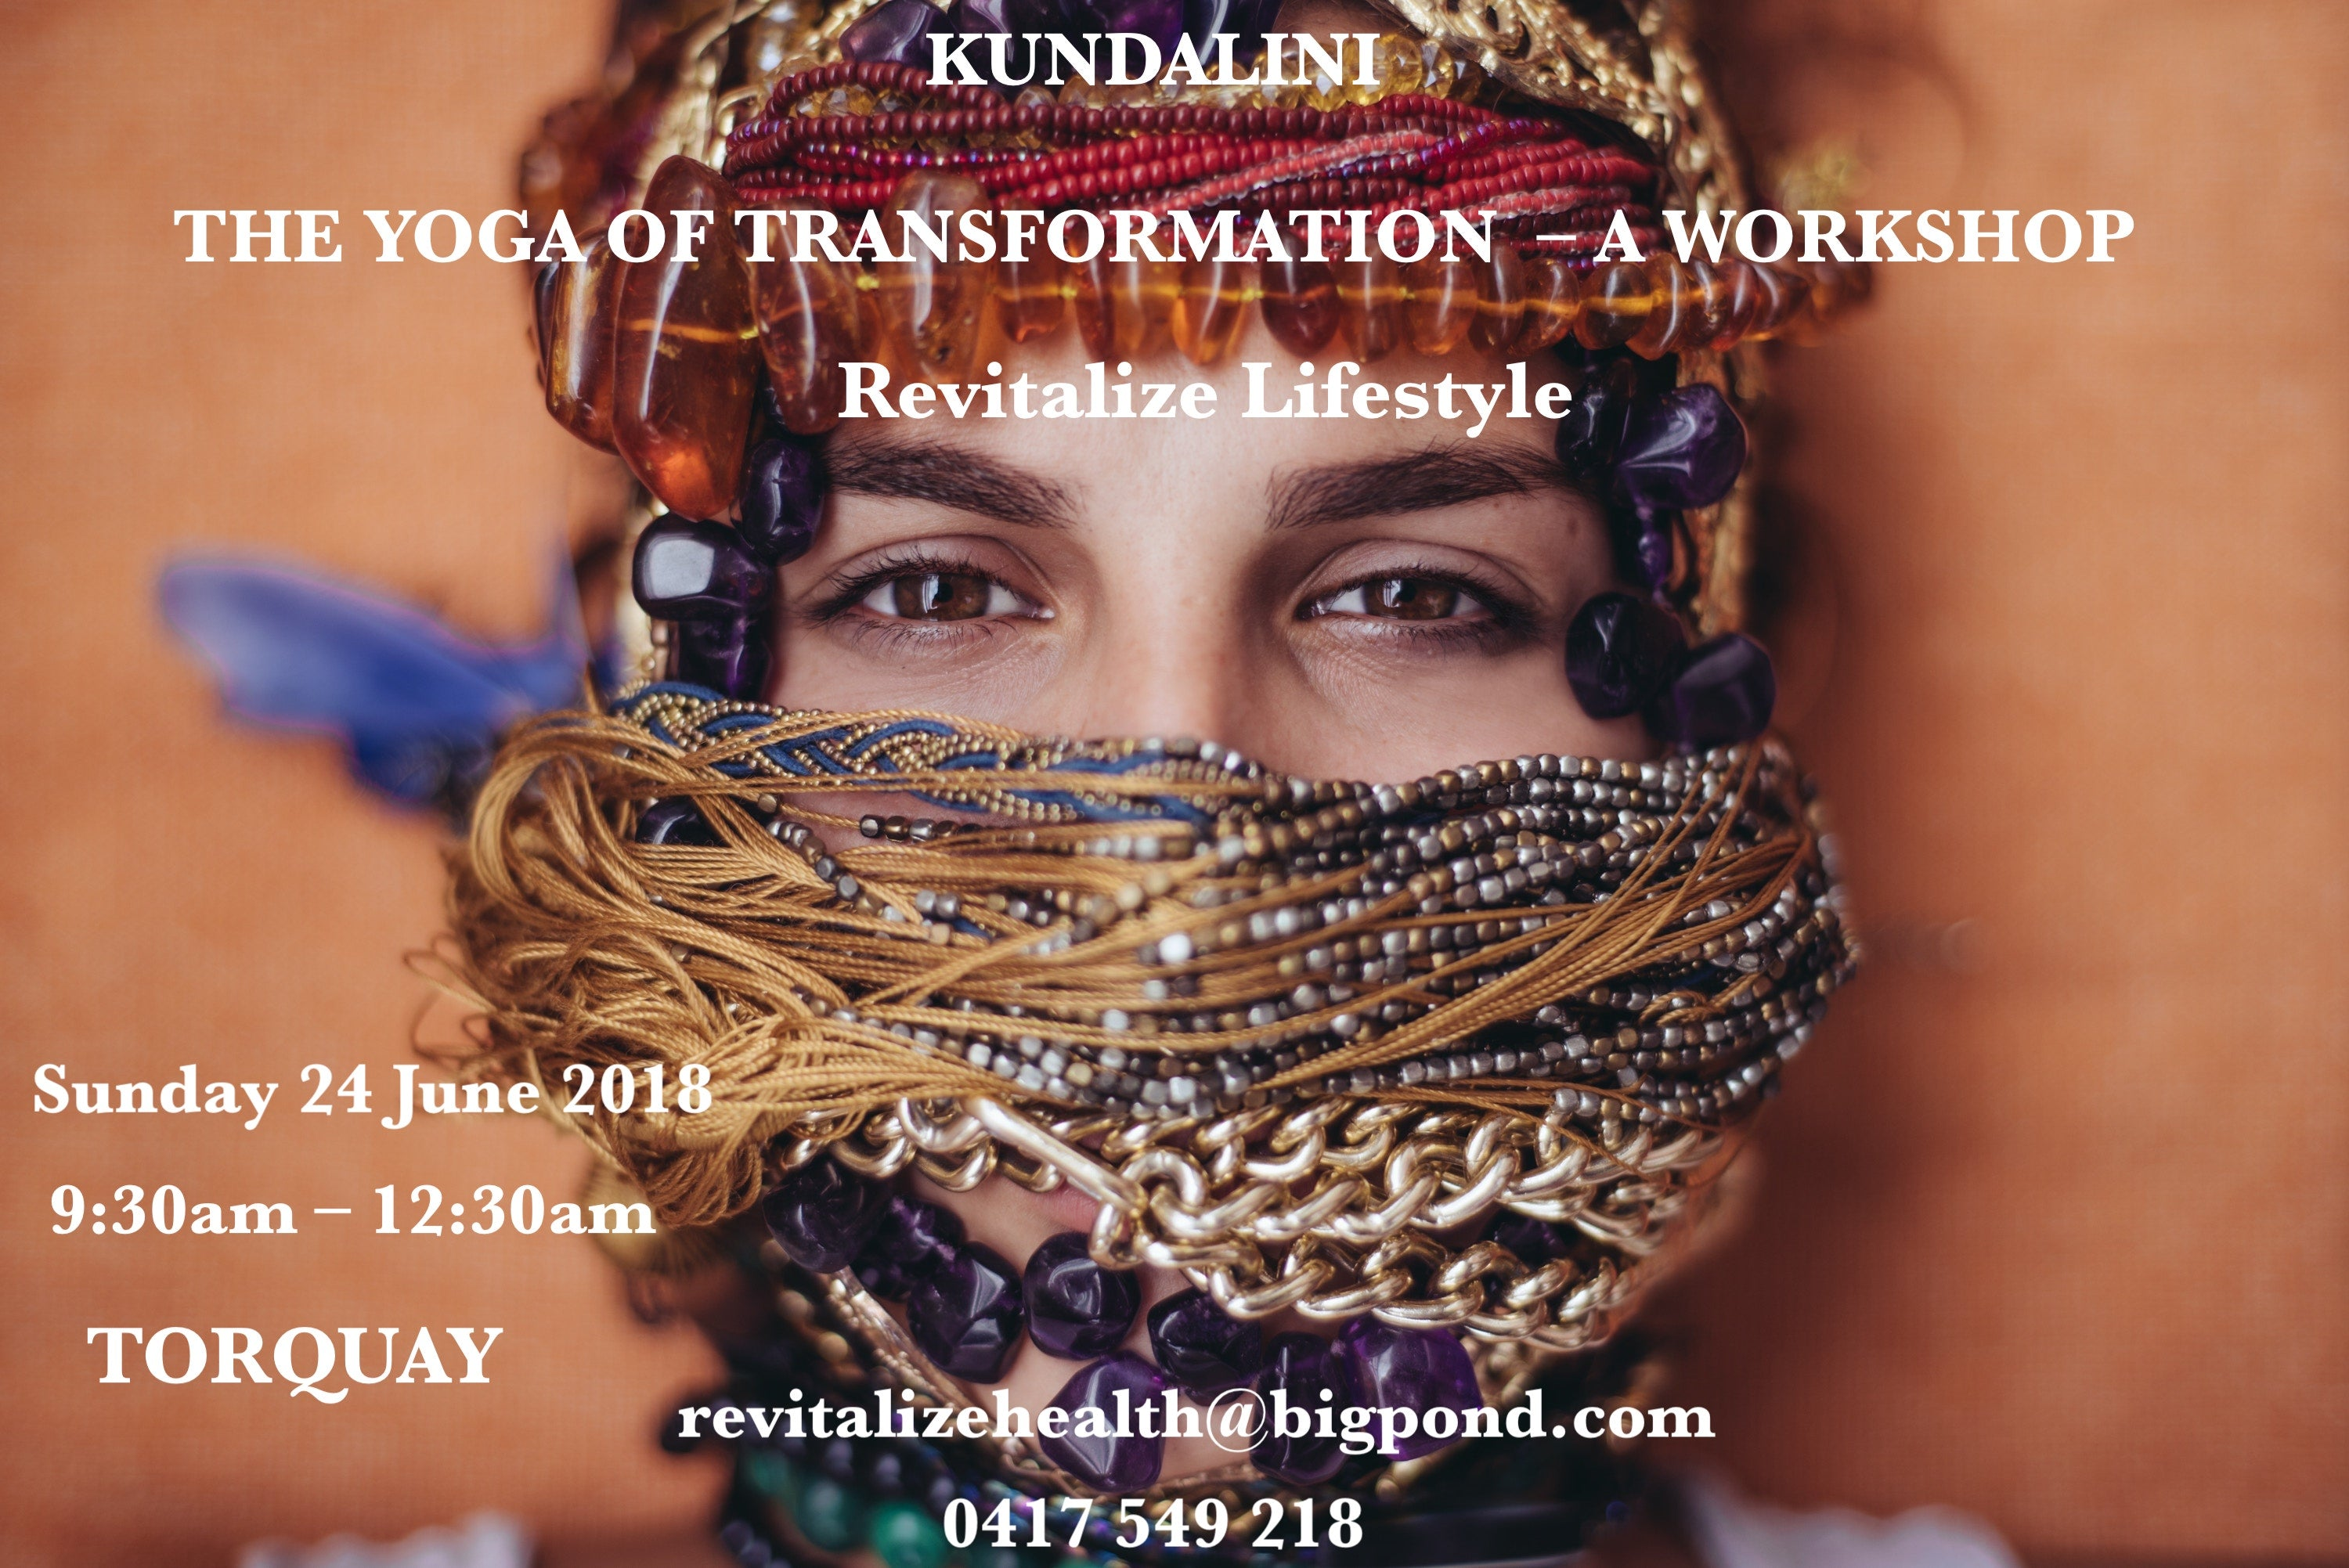 Kundalini - A Yoga of Transformation Retreat